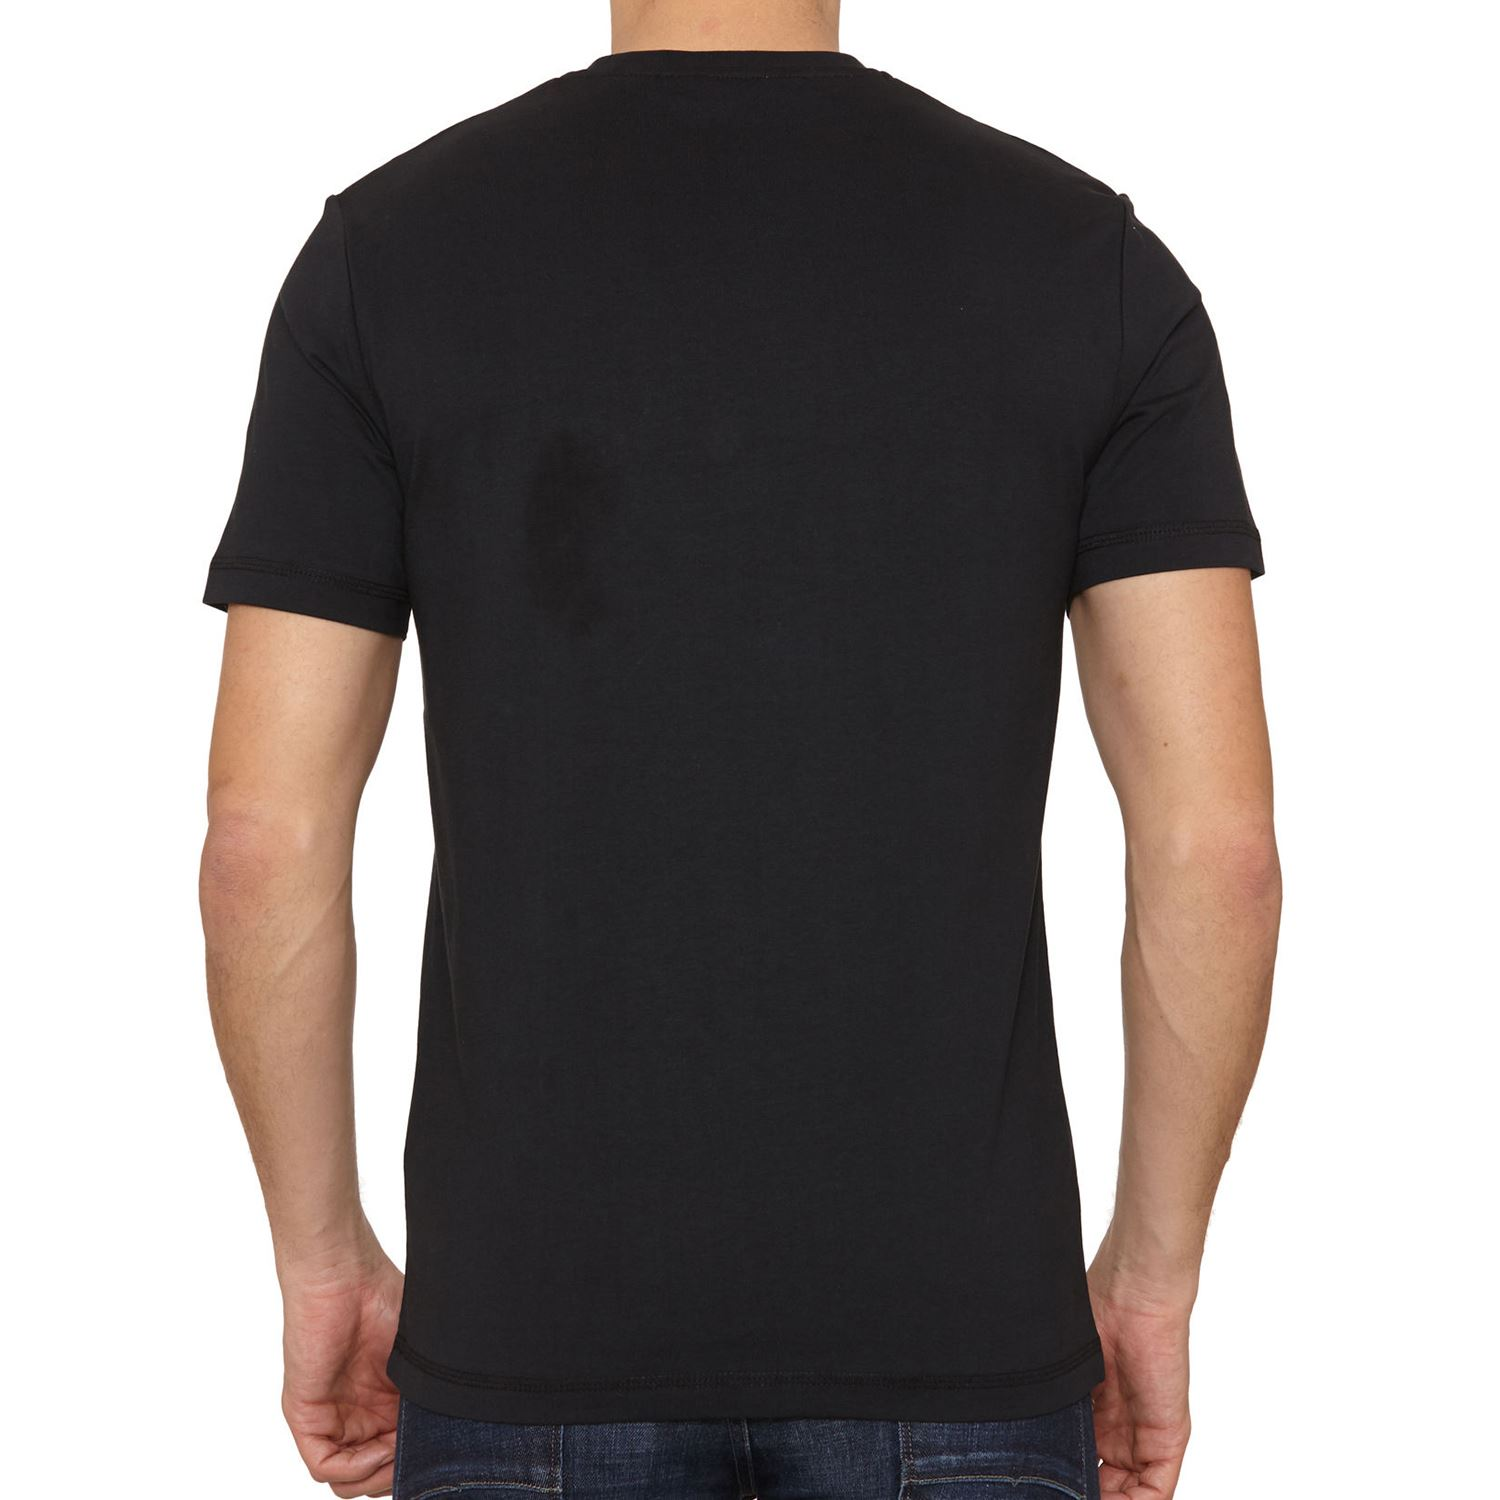 Black t shirt xxl - Original Penguin Flatlock Pocket T Shirt True Black